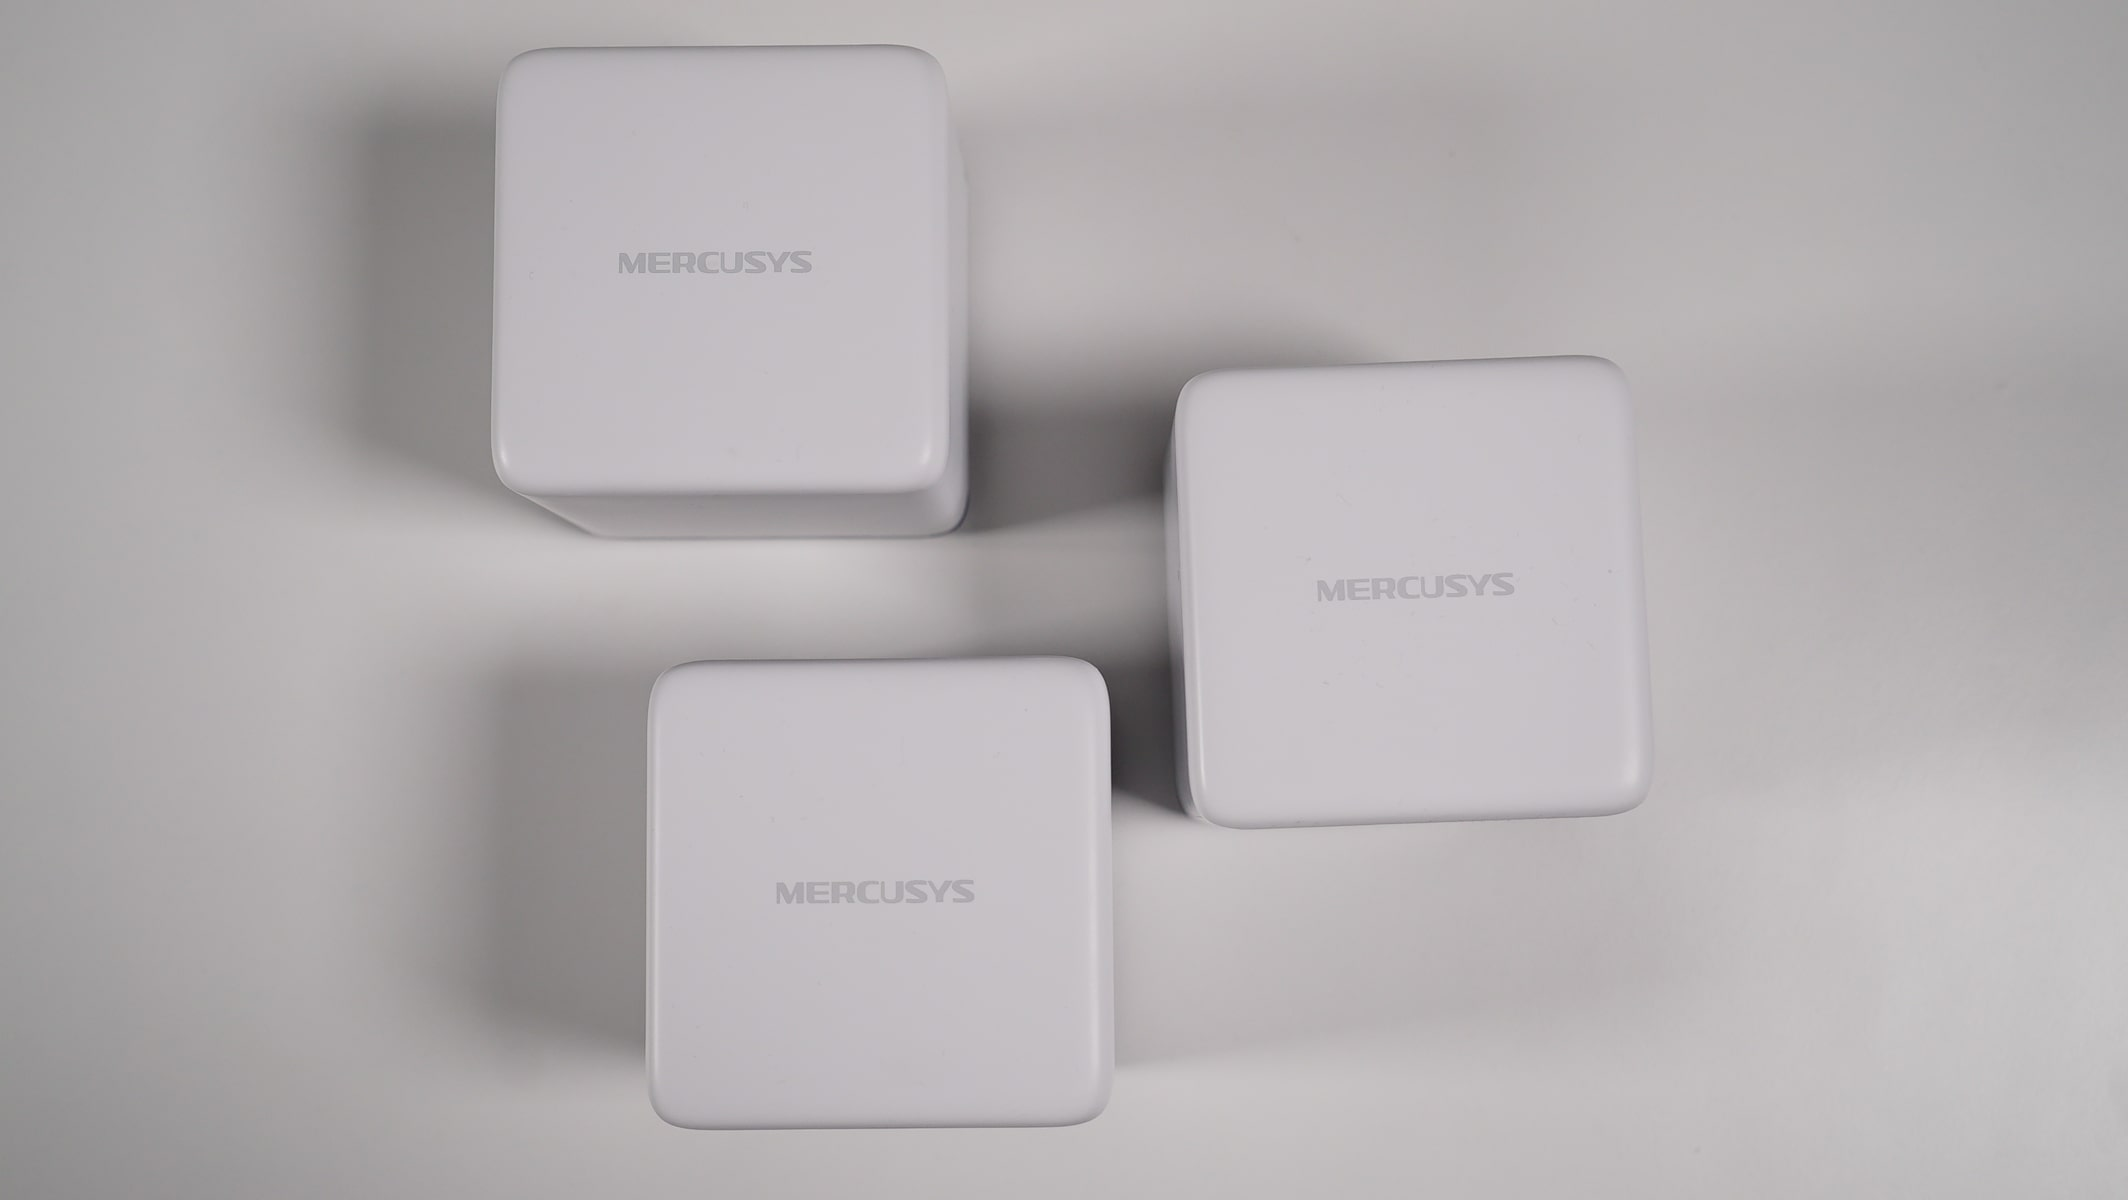 Review Mercusys Halo H50G Mesh Router